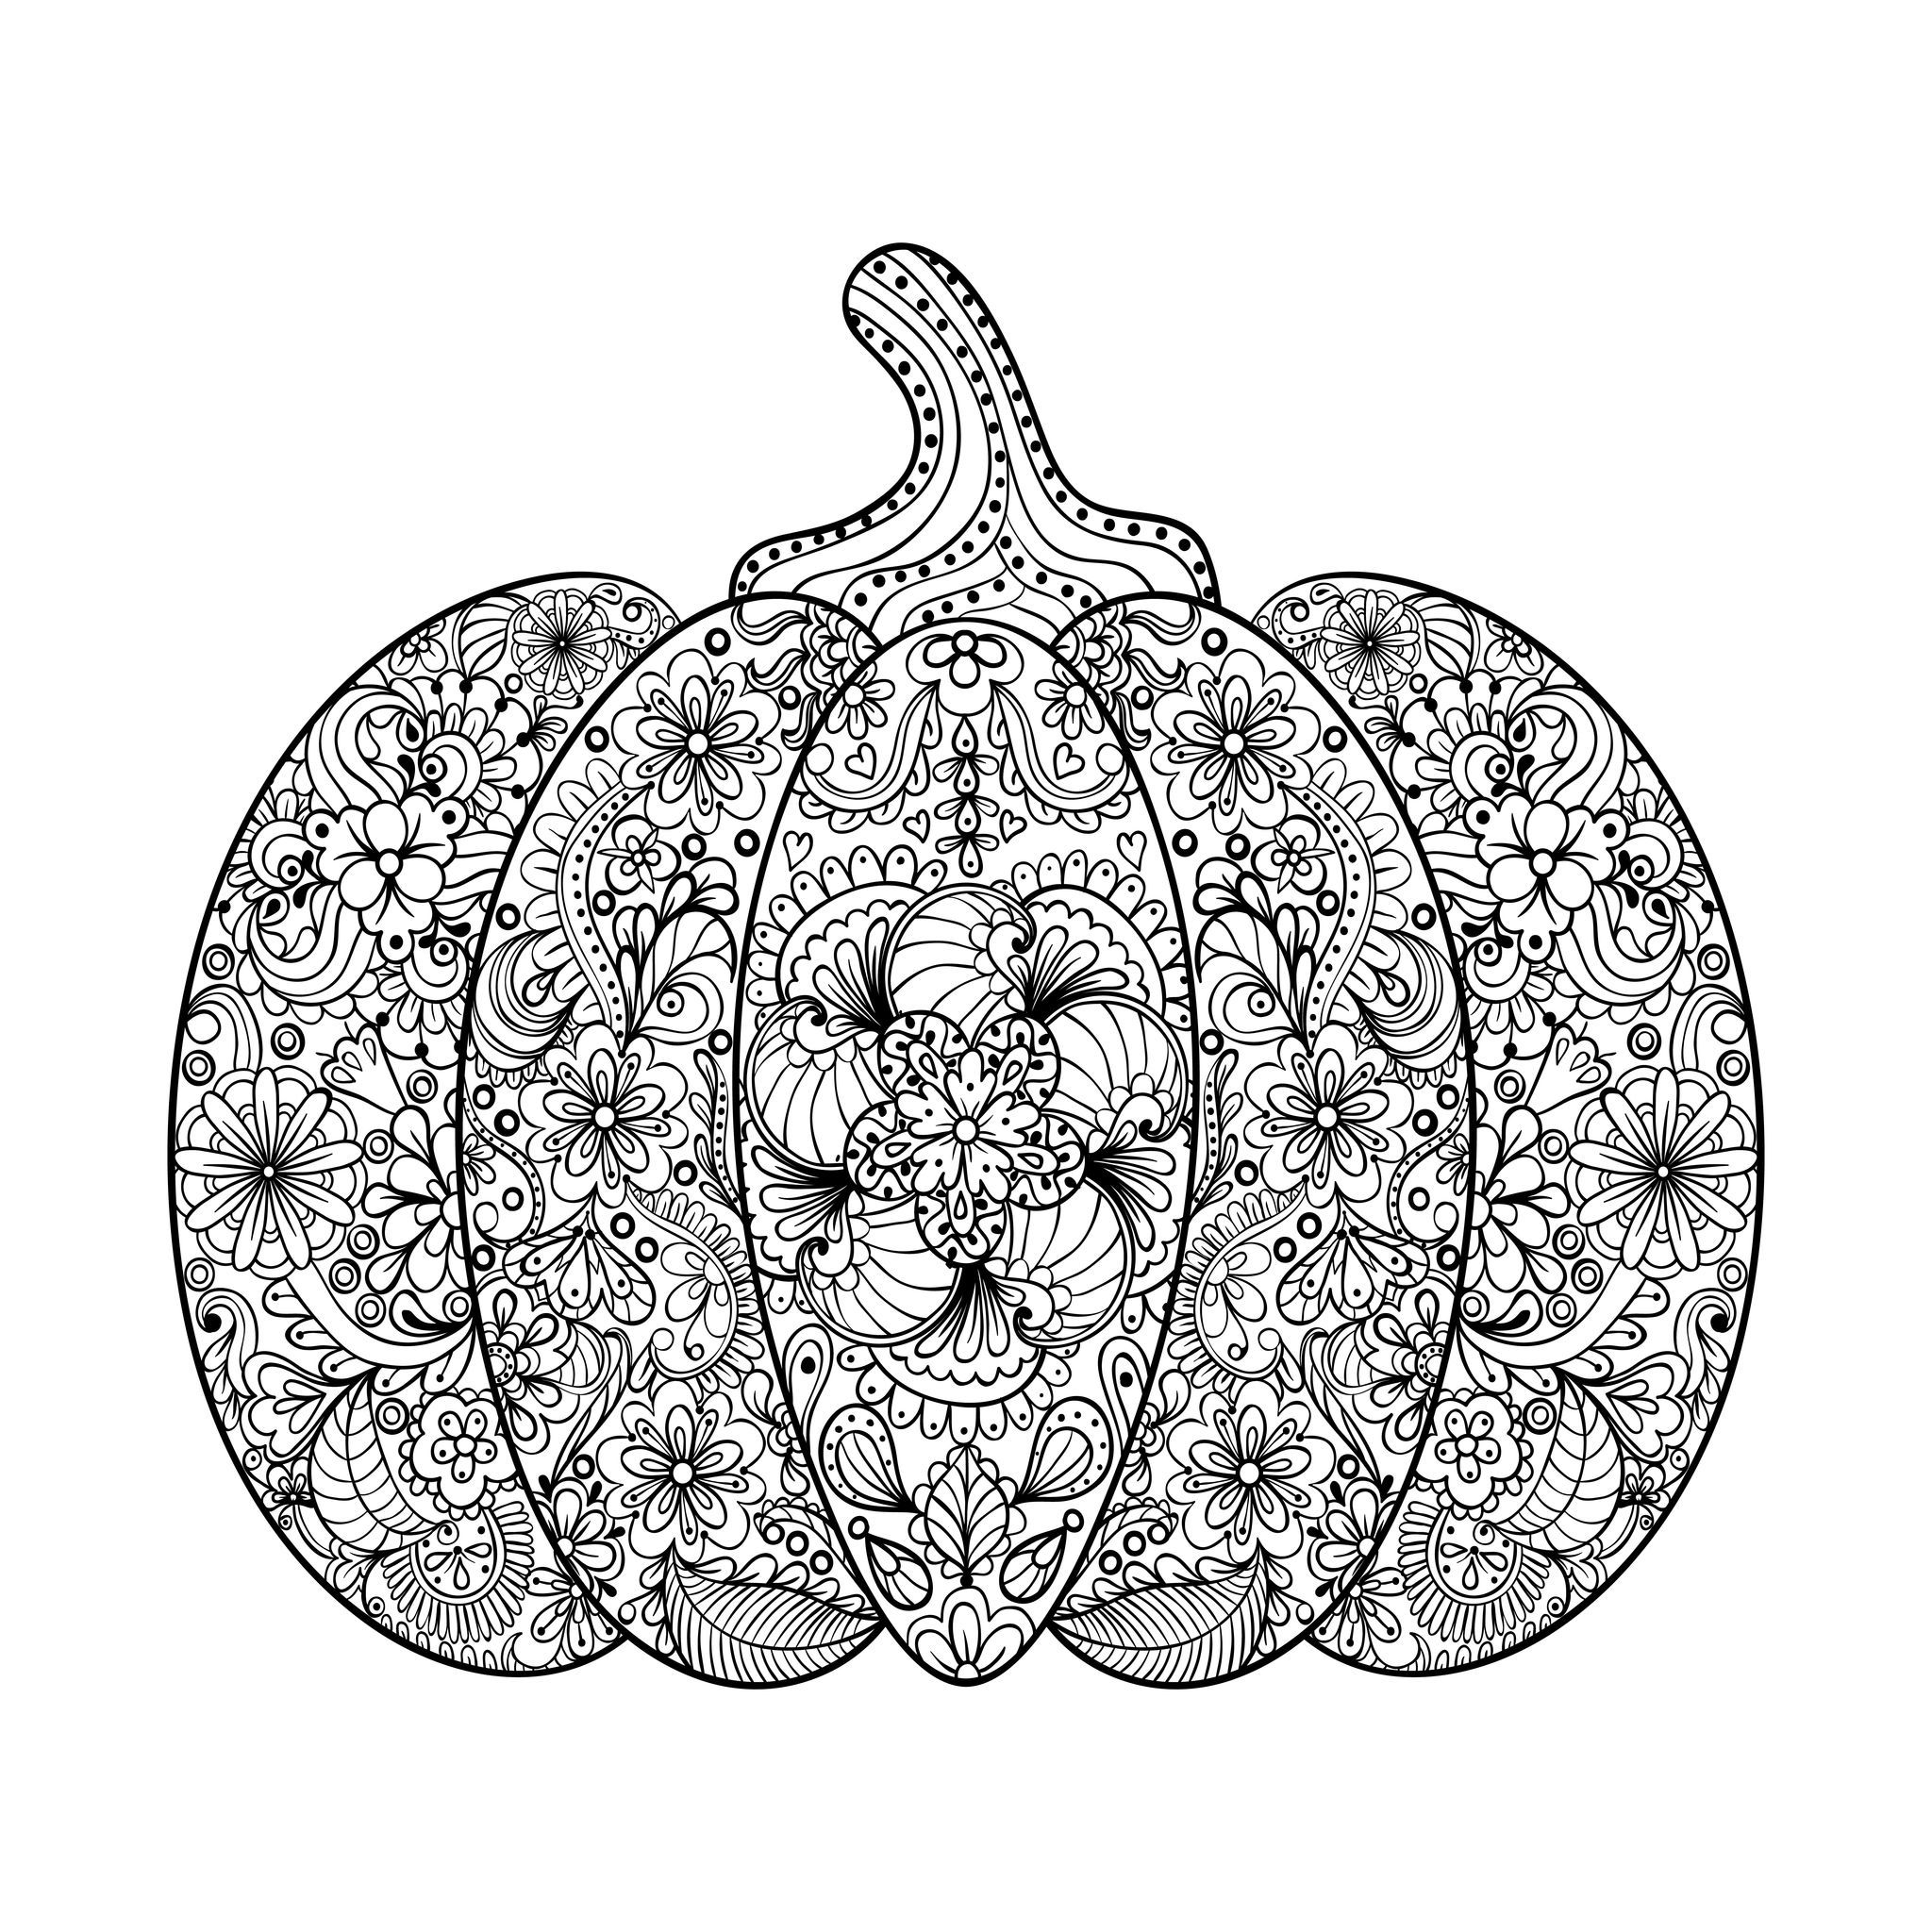 Magnificent Halloween pumpkin, filled with flowered patterns, From ...